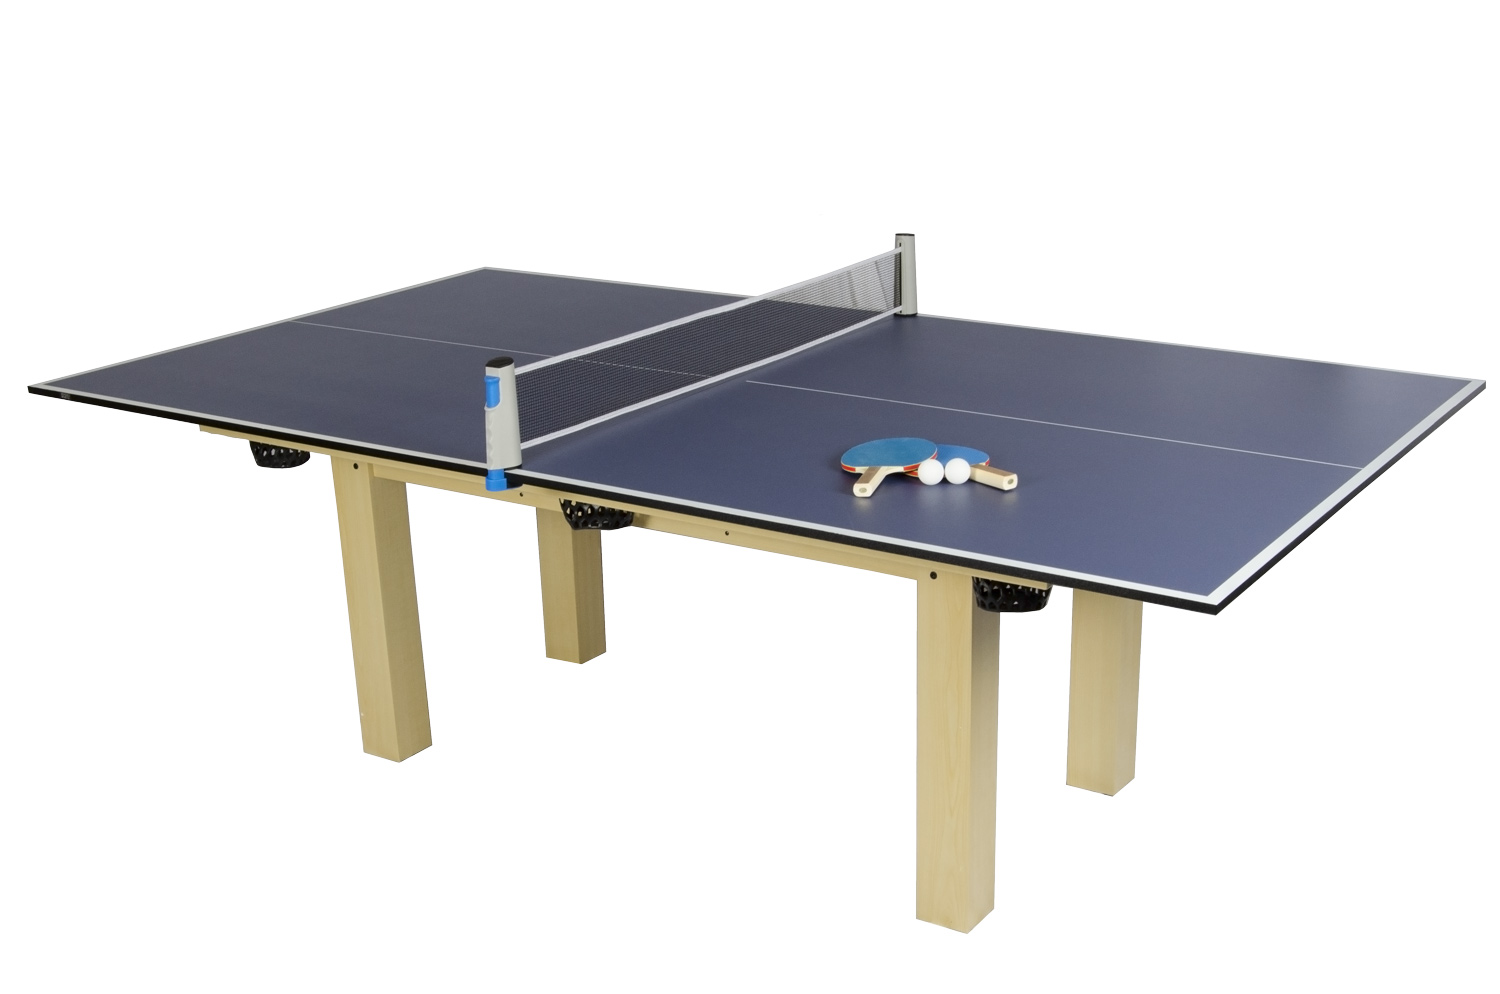 The Table Tennis Top Fitted To A Pool Table